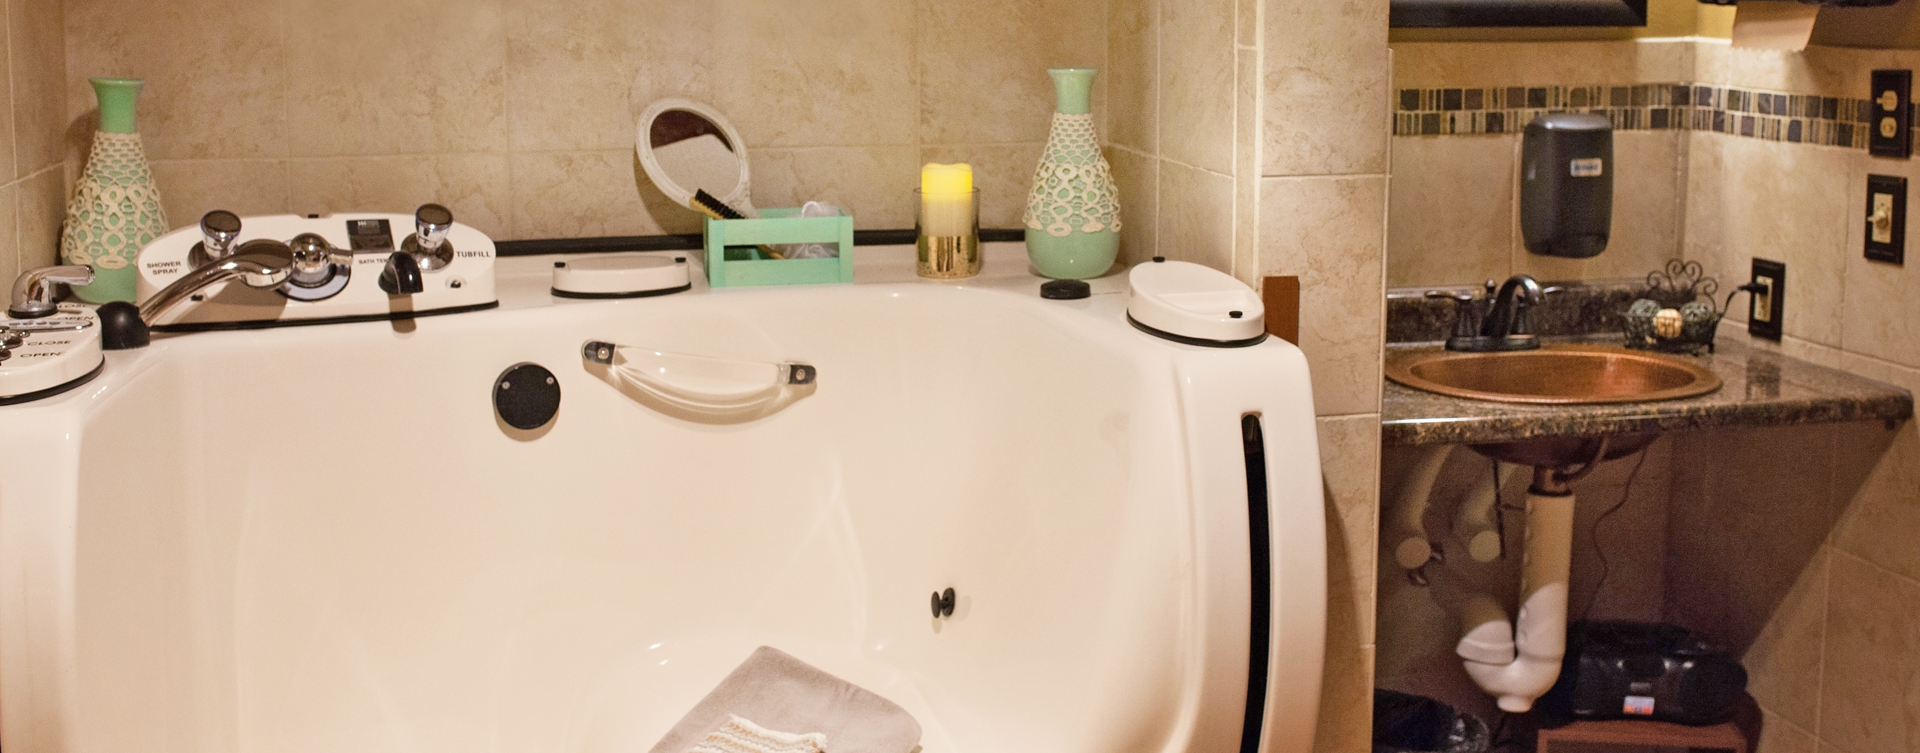 Our whirlpool bathtub creates a spa-like environment tailored to enhance your relaxation and enjoyment at Bickford of Cedar Falls